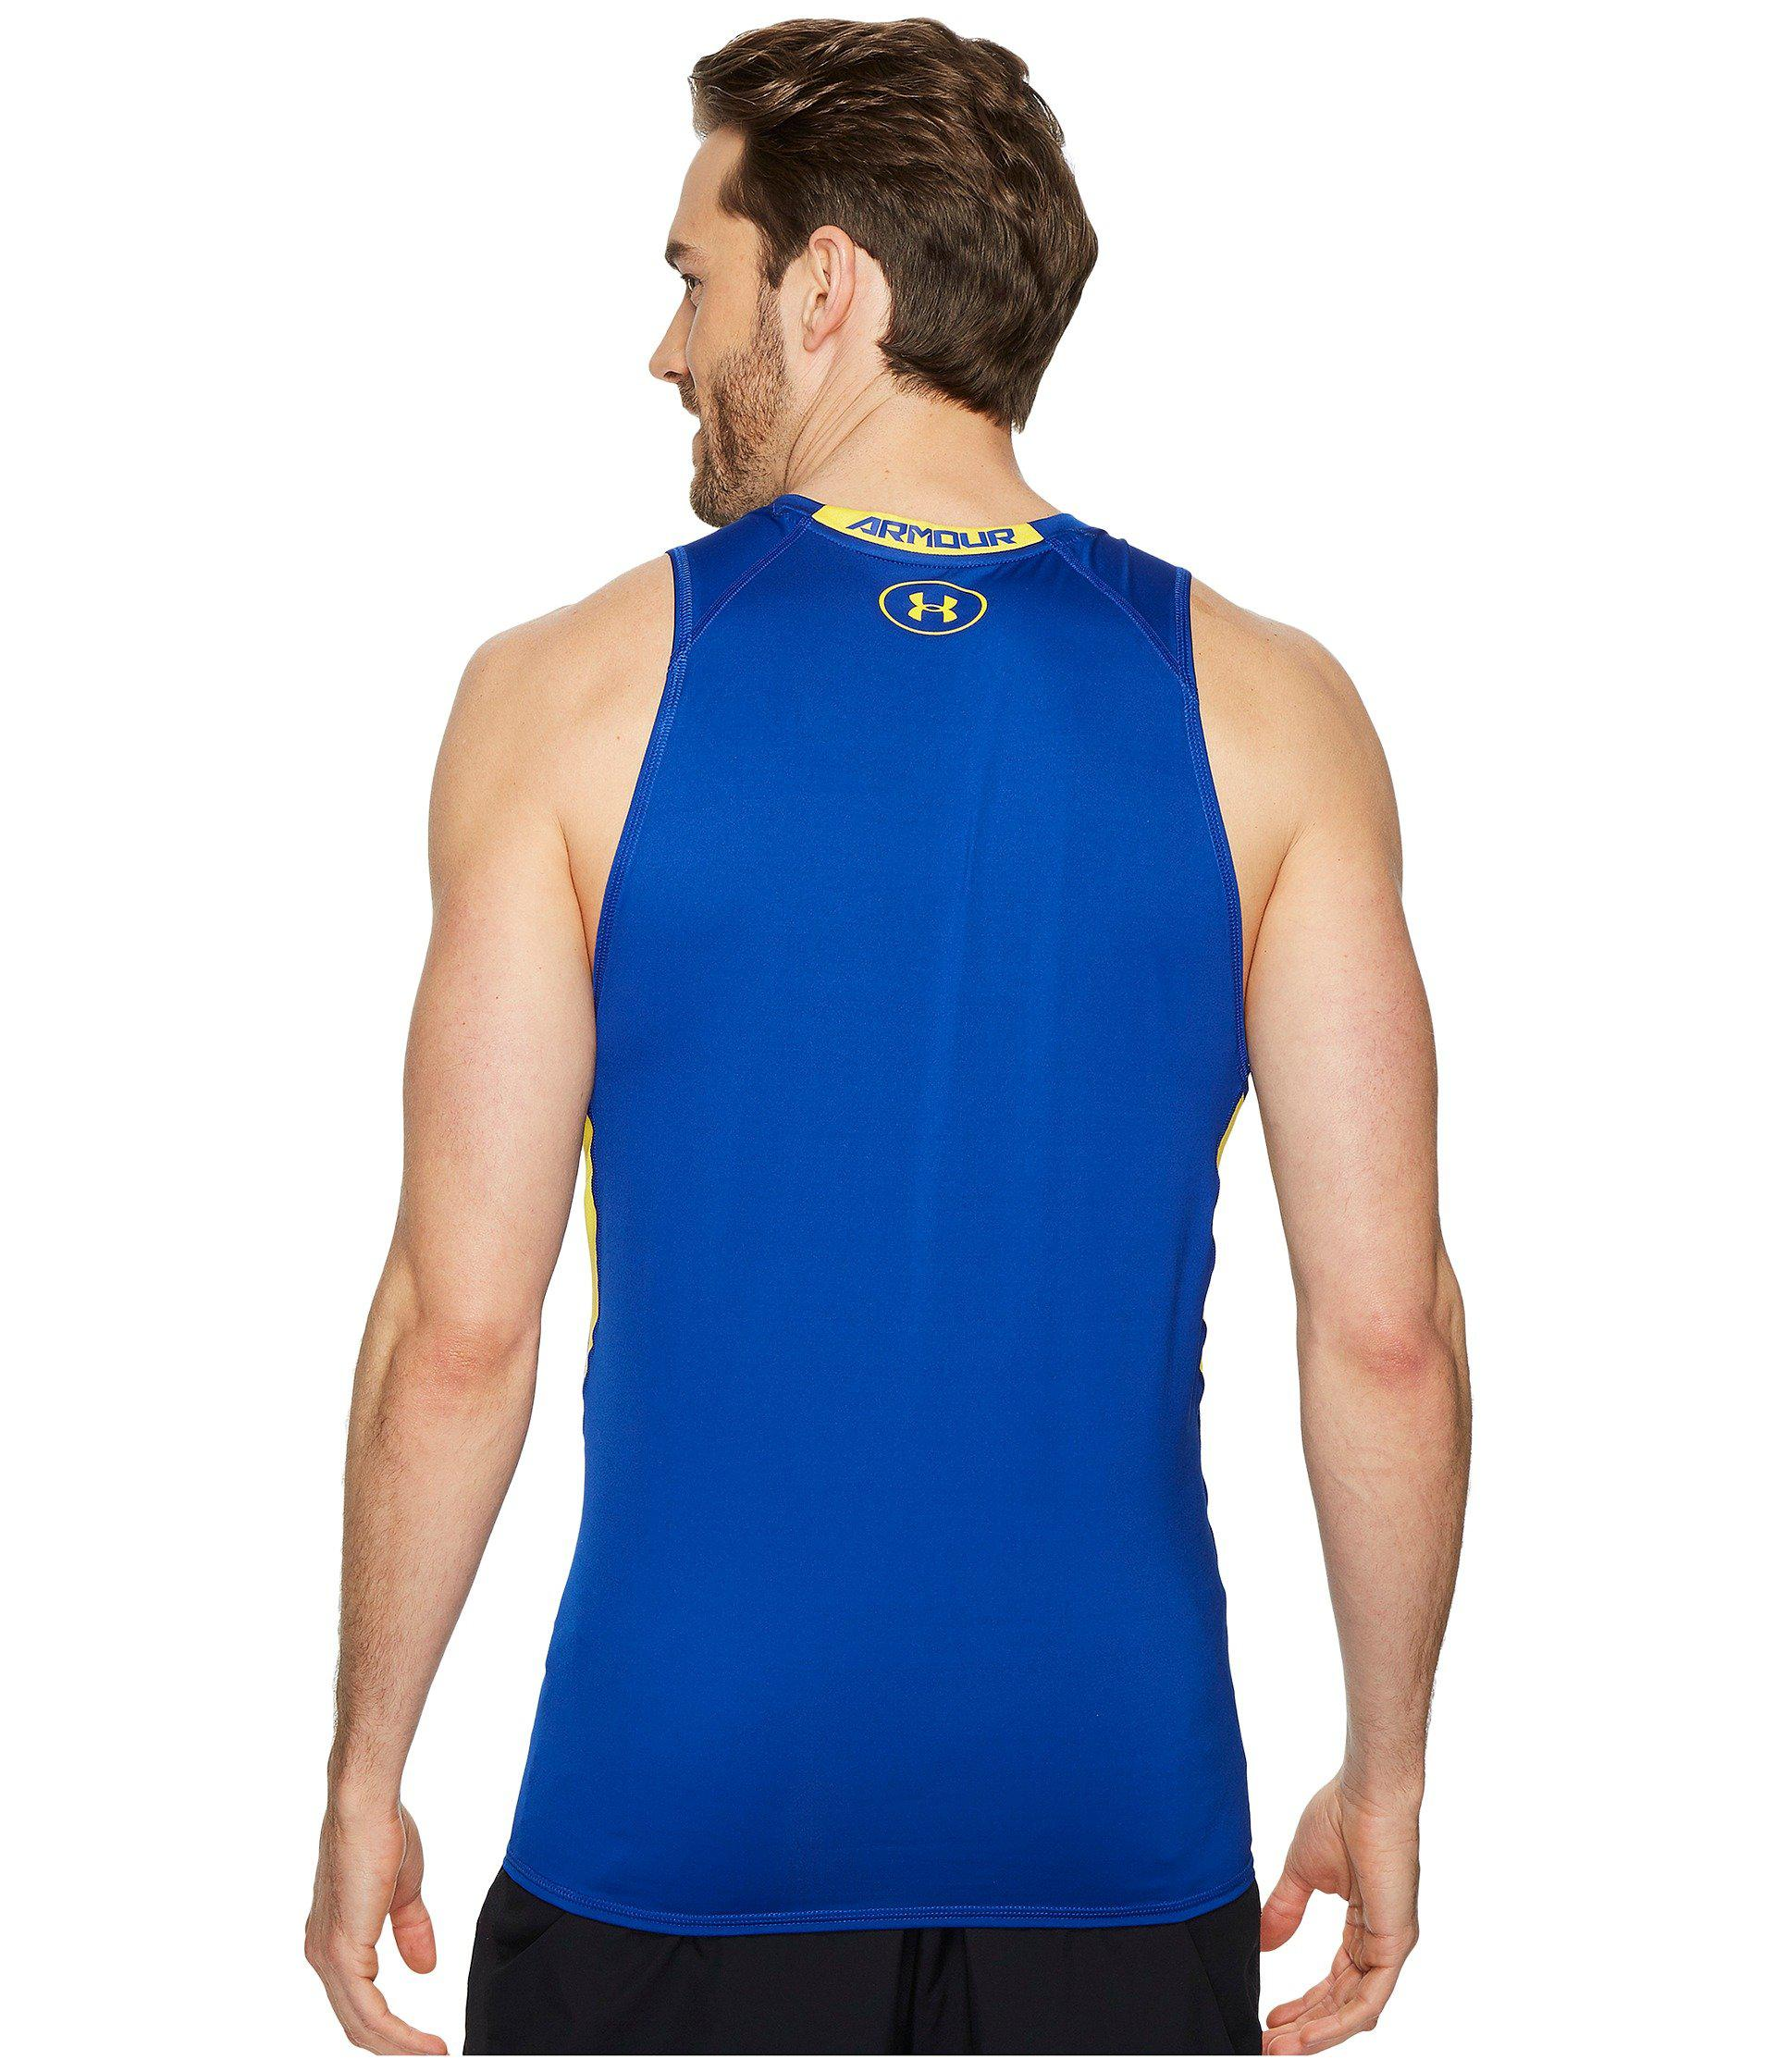 1c32acc95 Under Armour Ua Heatgear® Armour Printed Compression Tank Top in ...